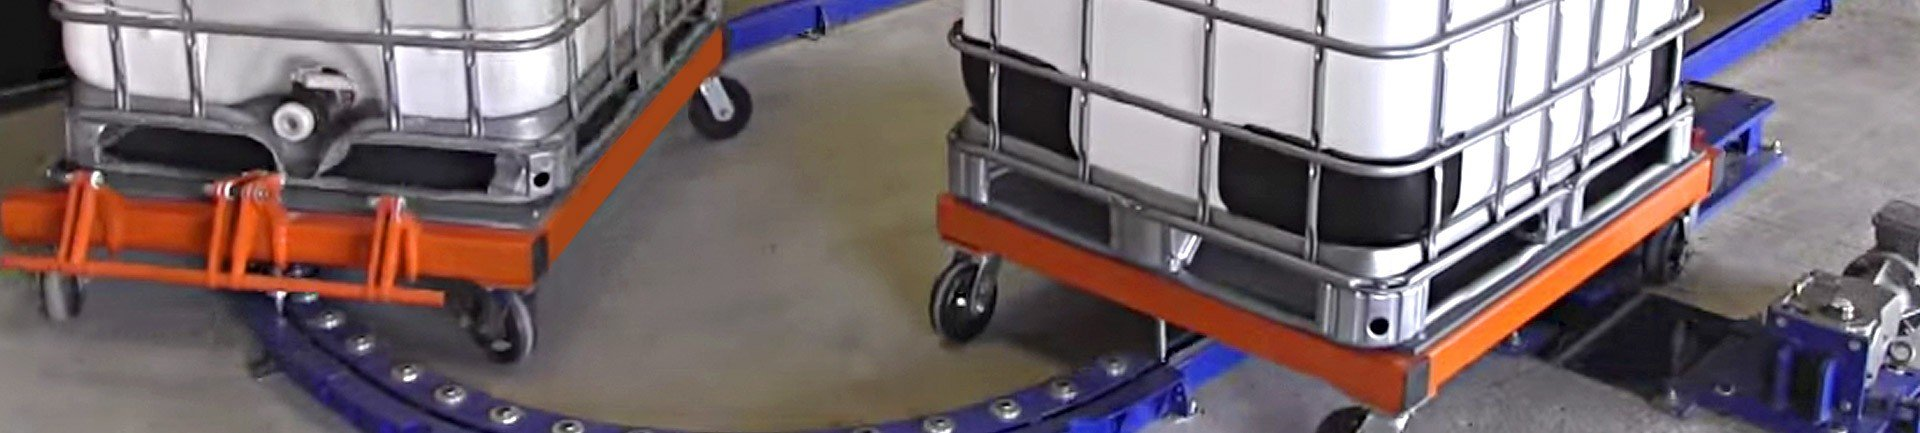 Pacline conveyor testing facility header image